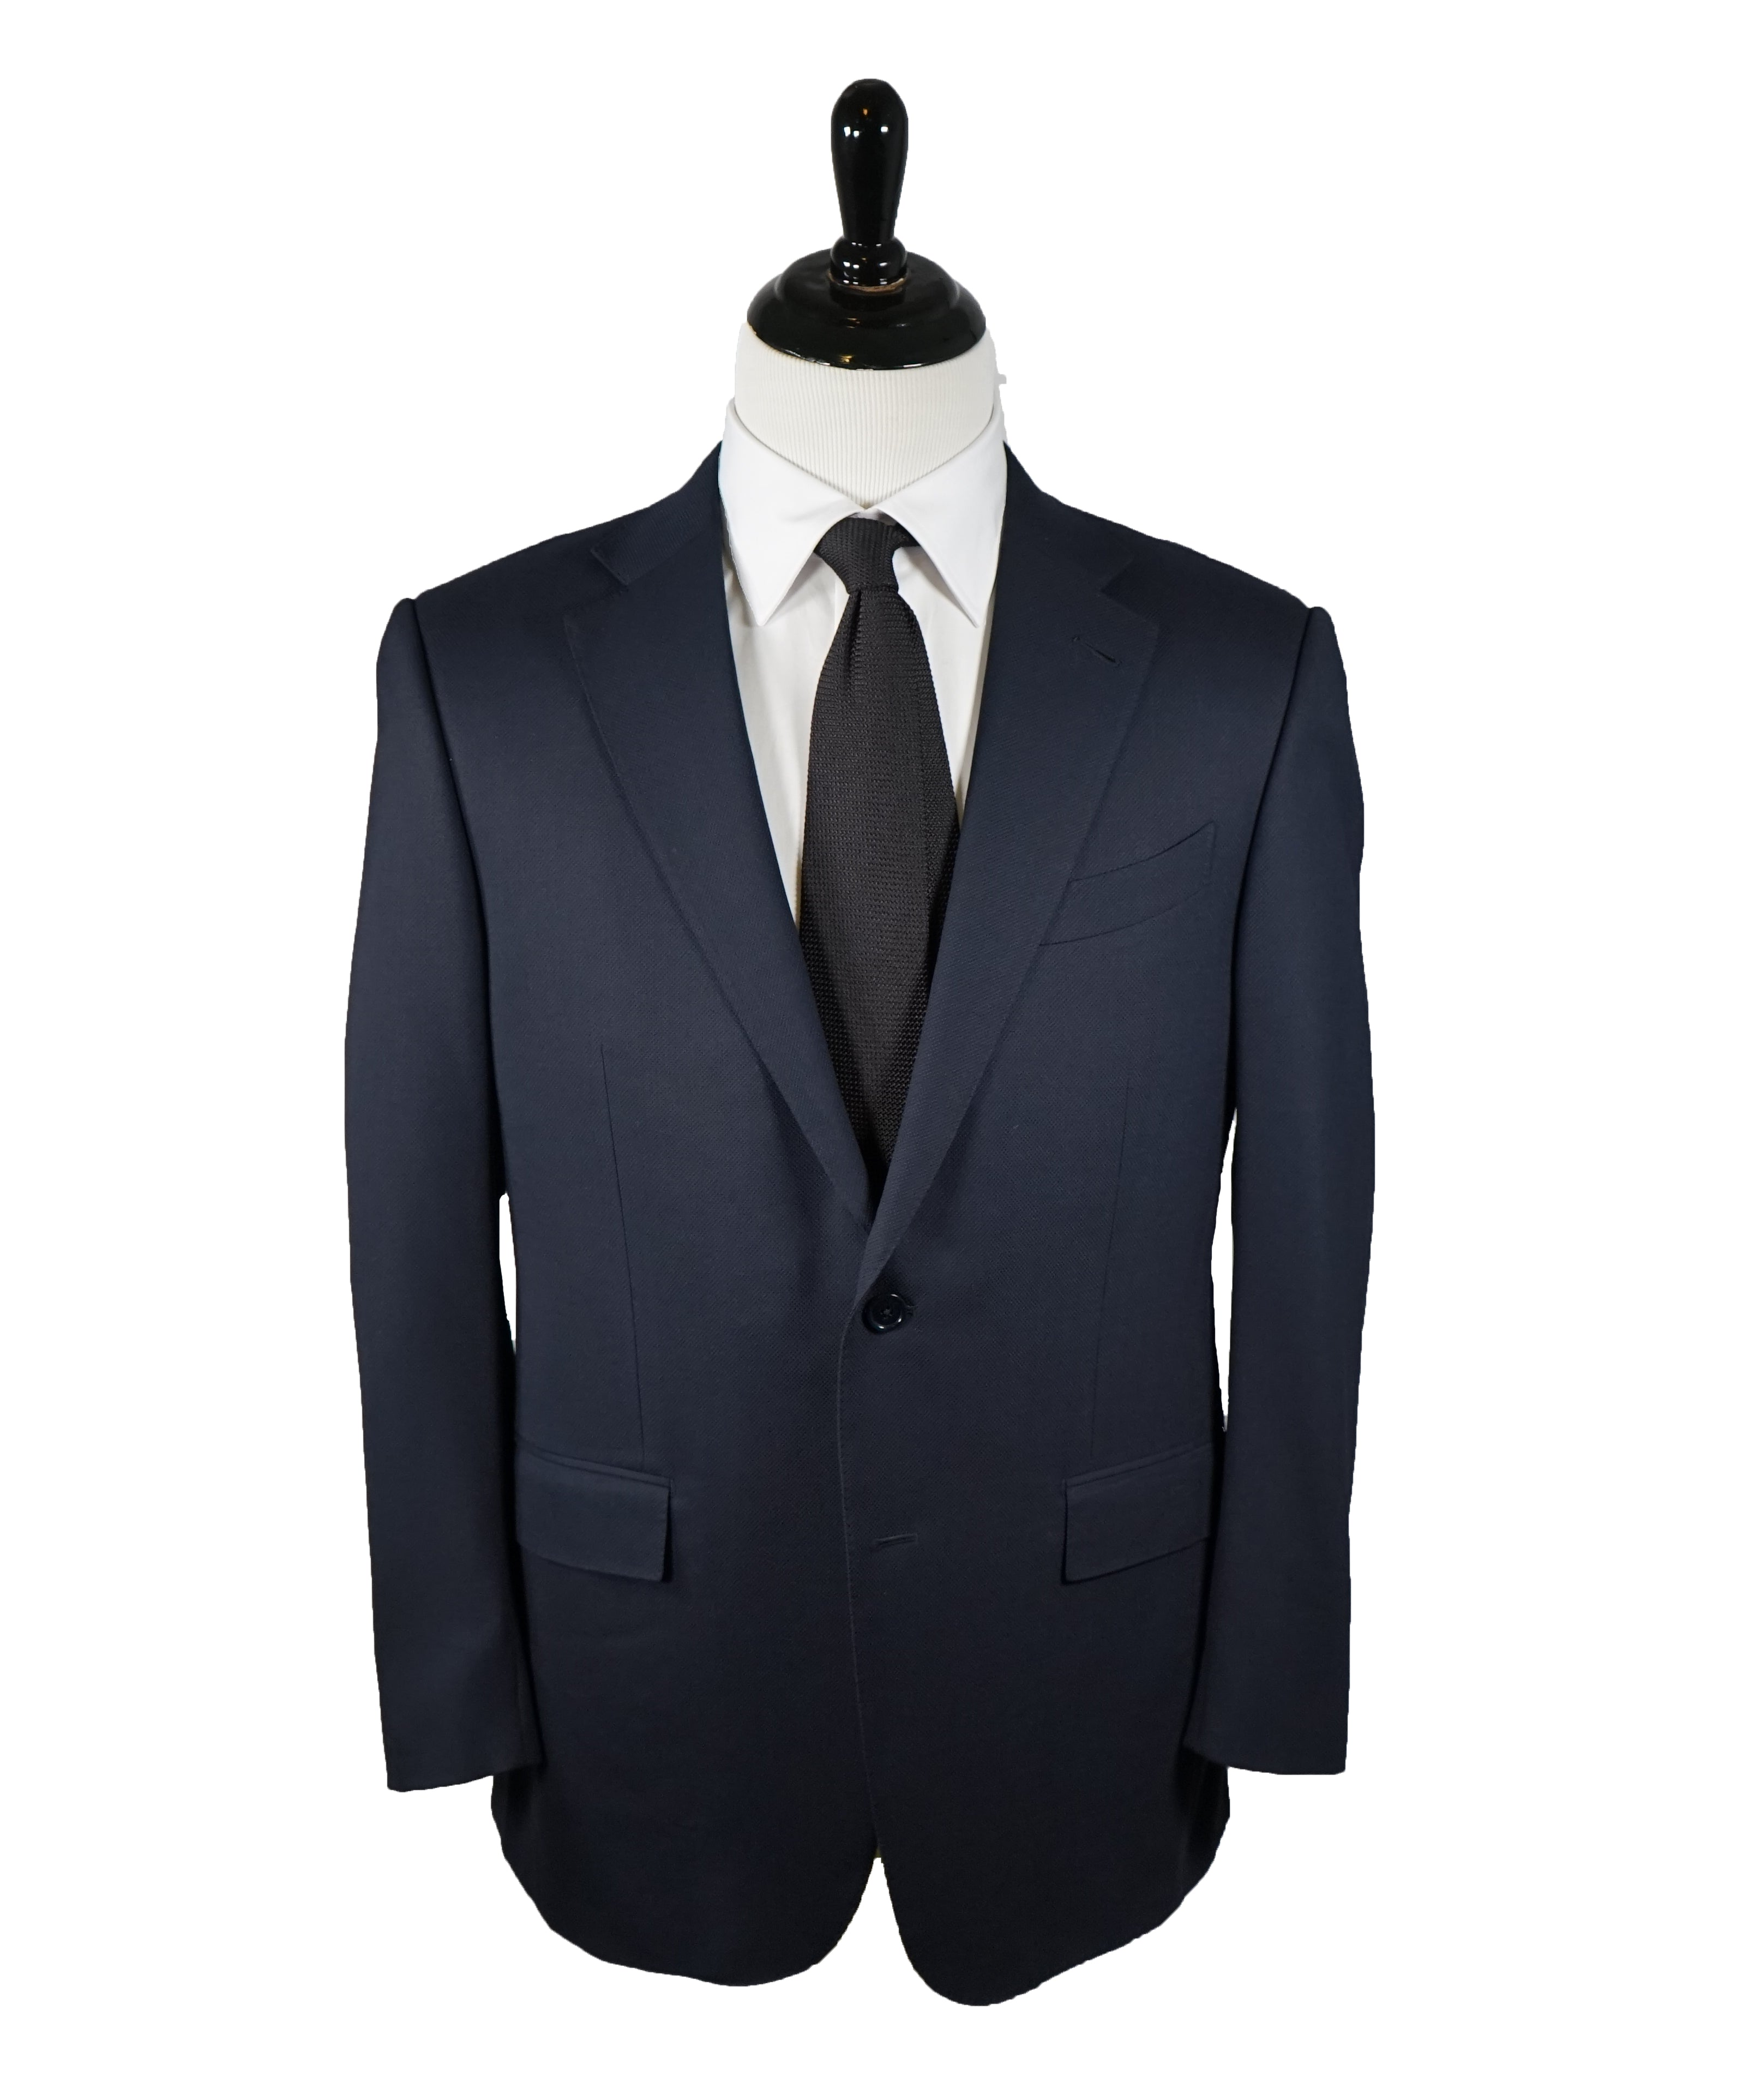 "ERMENEGILDO ZEGNA - Navy Royal Weave ""Cool Effect"" Blazer - 42R"